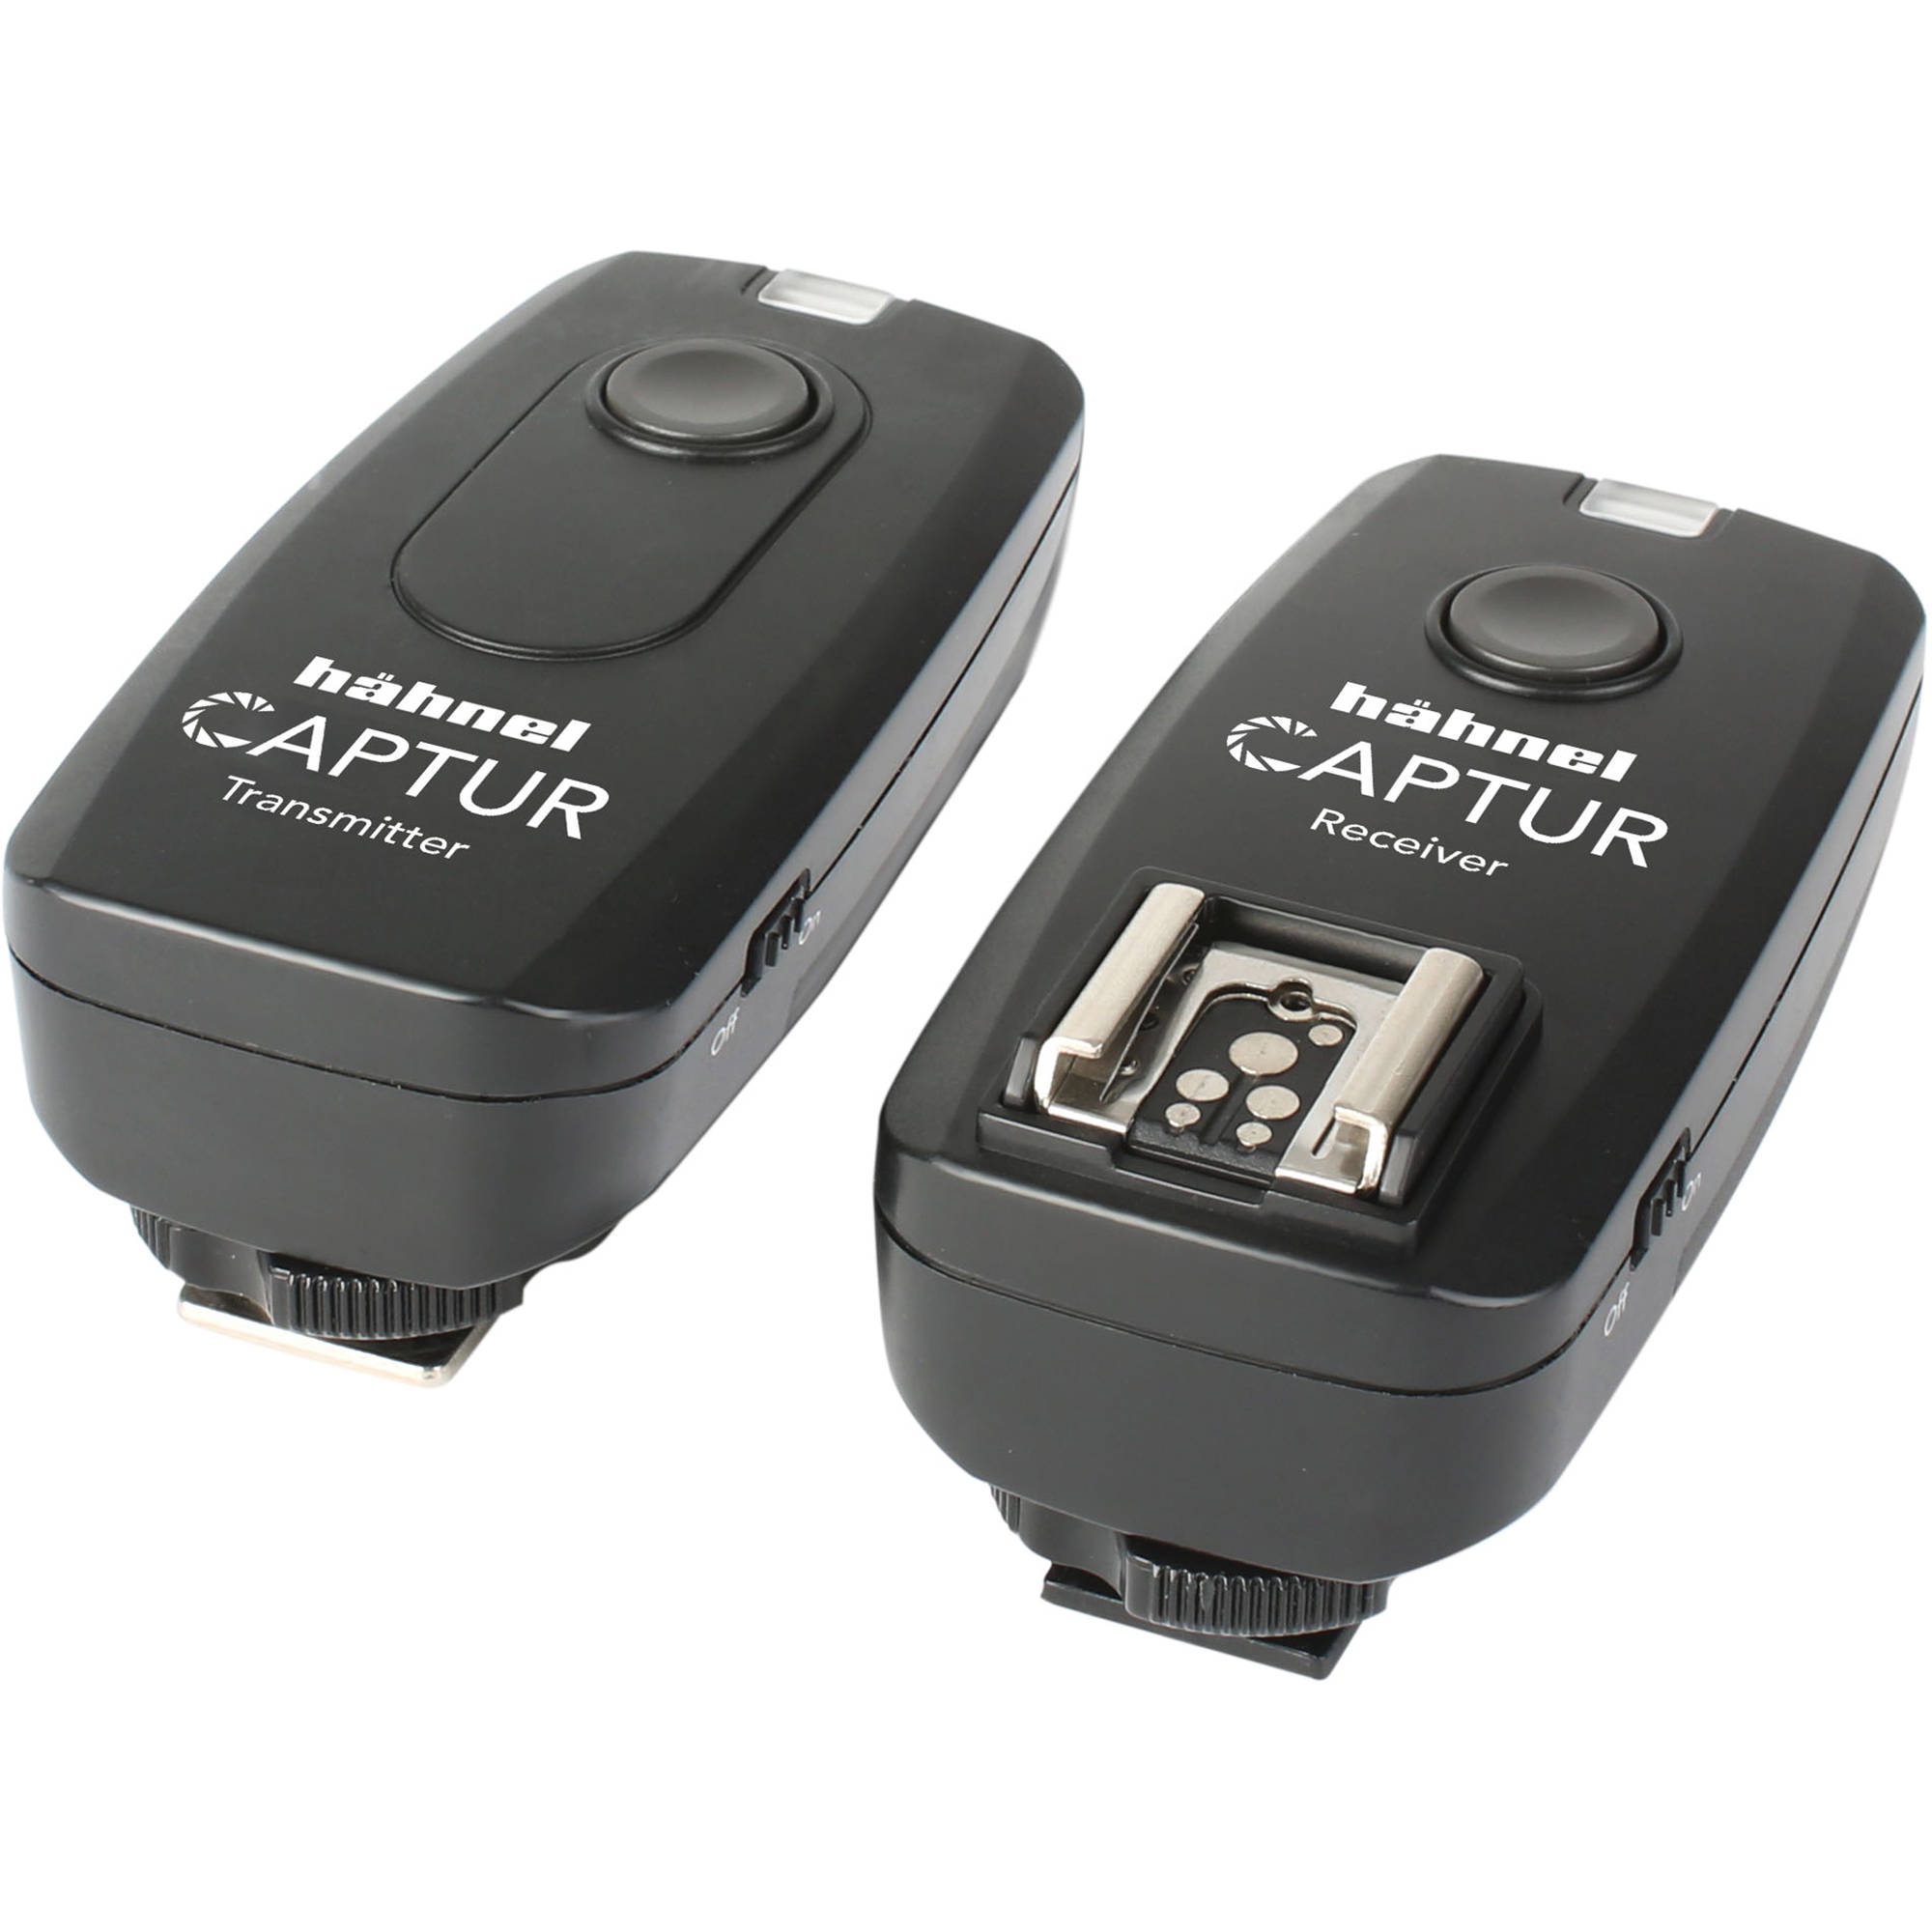 http://www.fotofoto.lt/static/uploads//hahnel_hl_captur_s_capture_wireless_shutter_flash_trigger_1140338_1.jpg